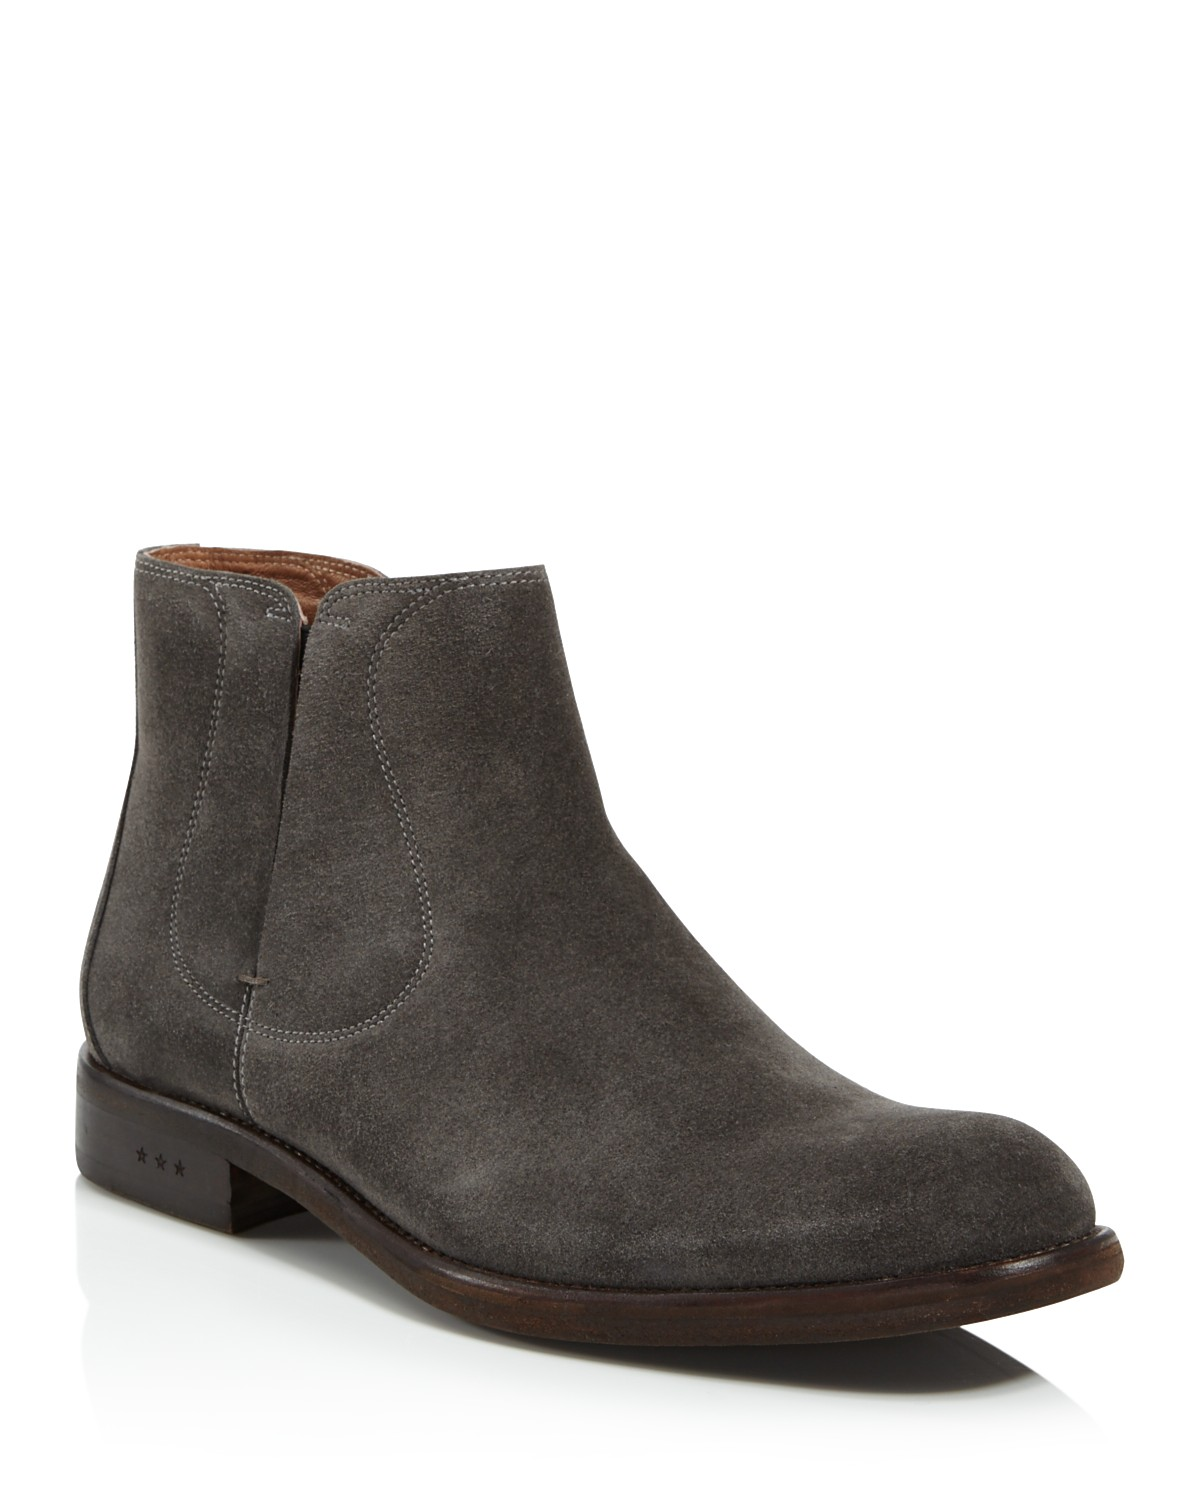 John Varvatos Men's Waverly Covered Suede Chelsea Boots 529lmI